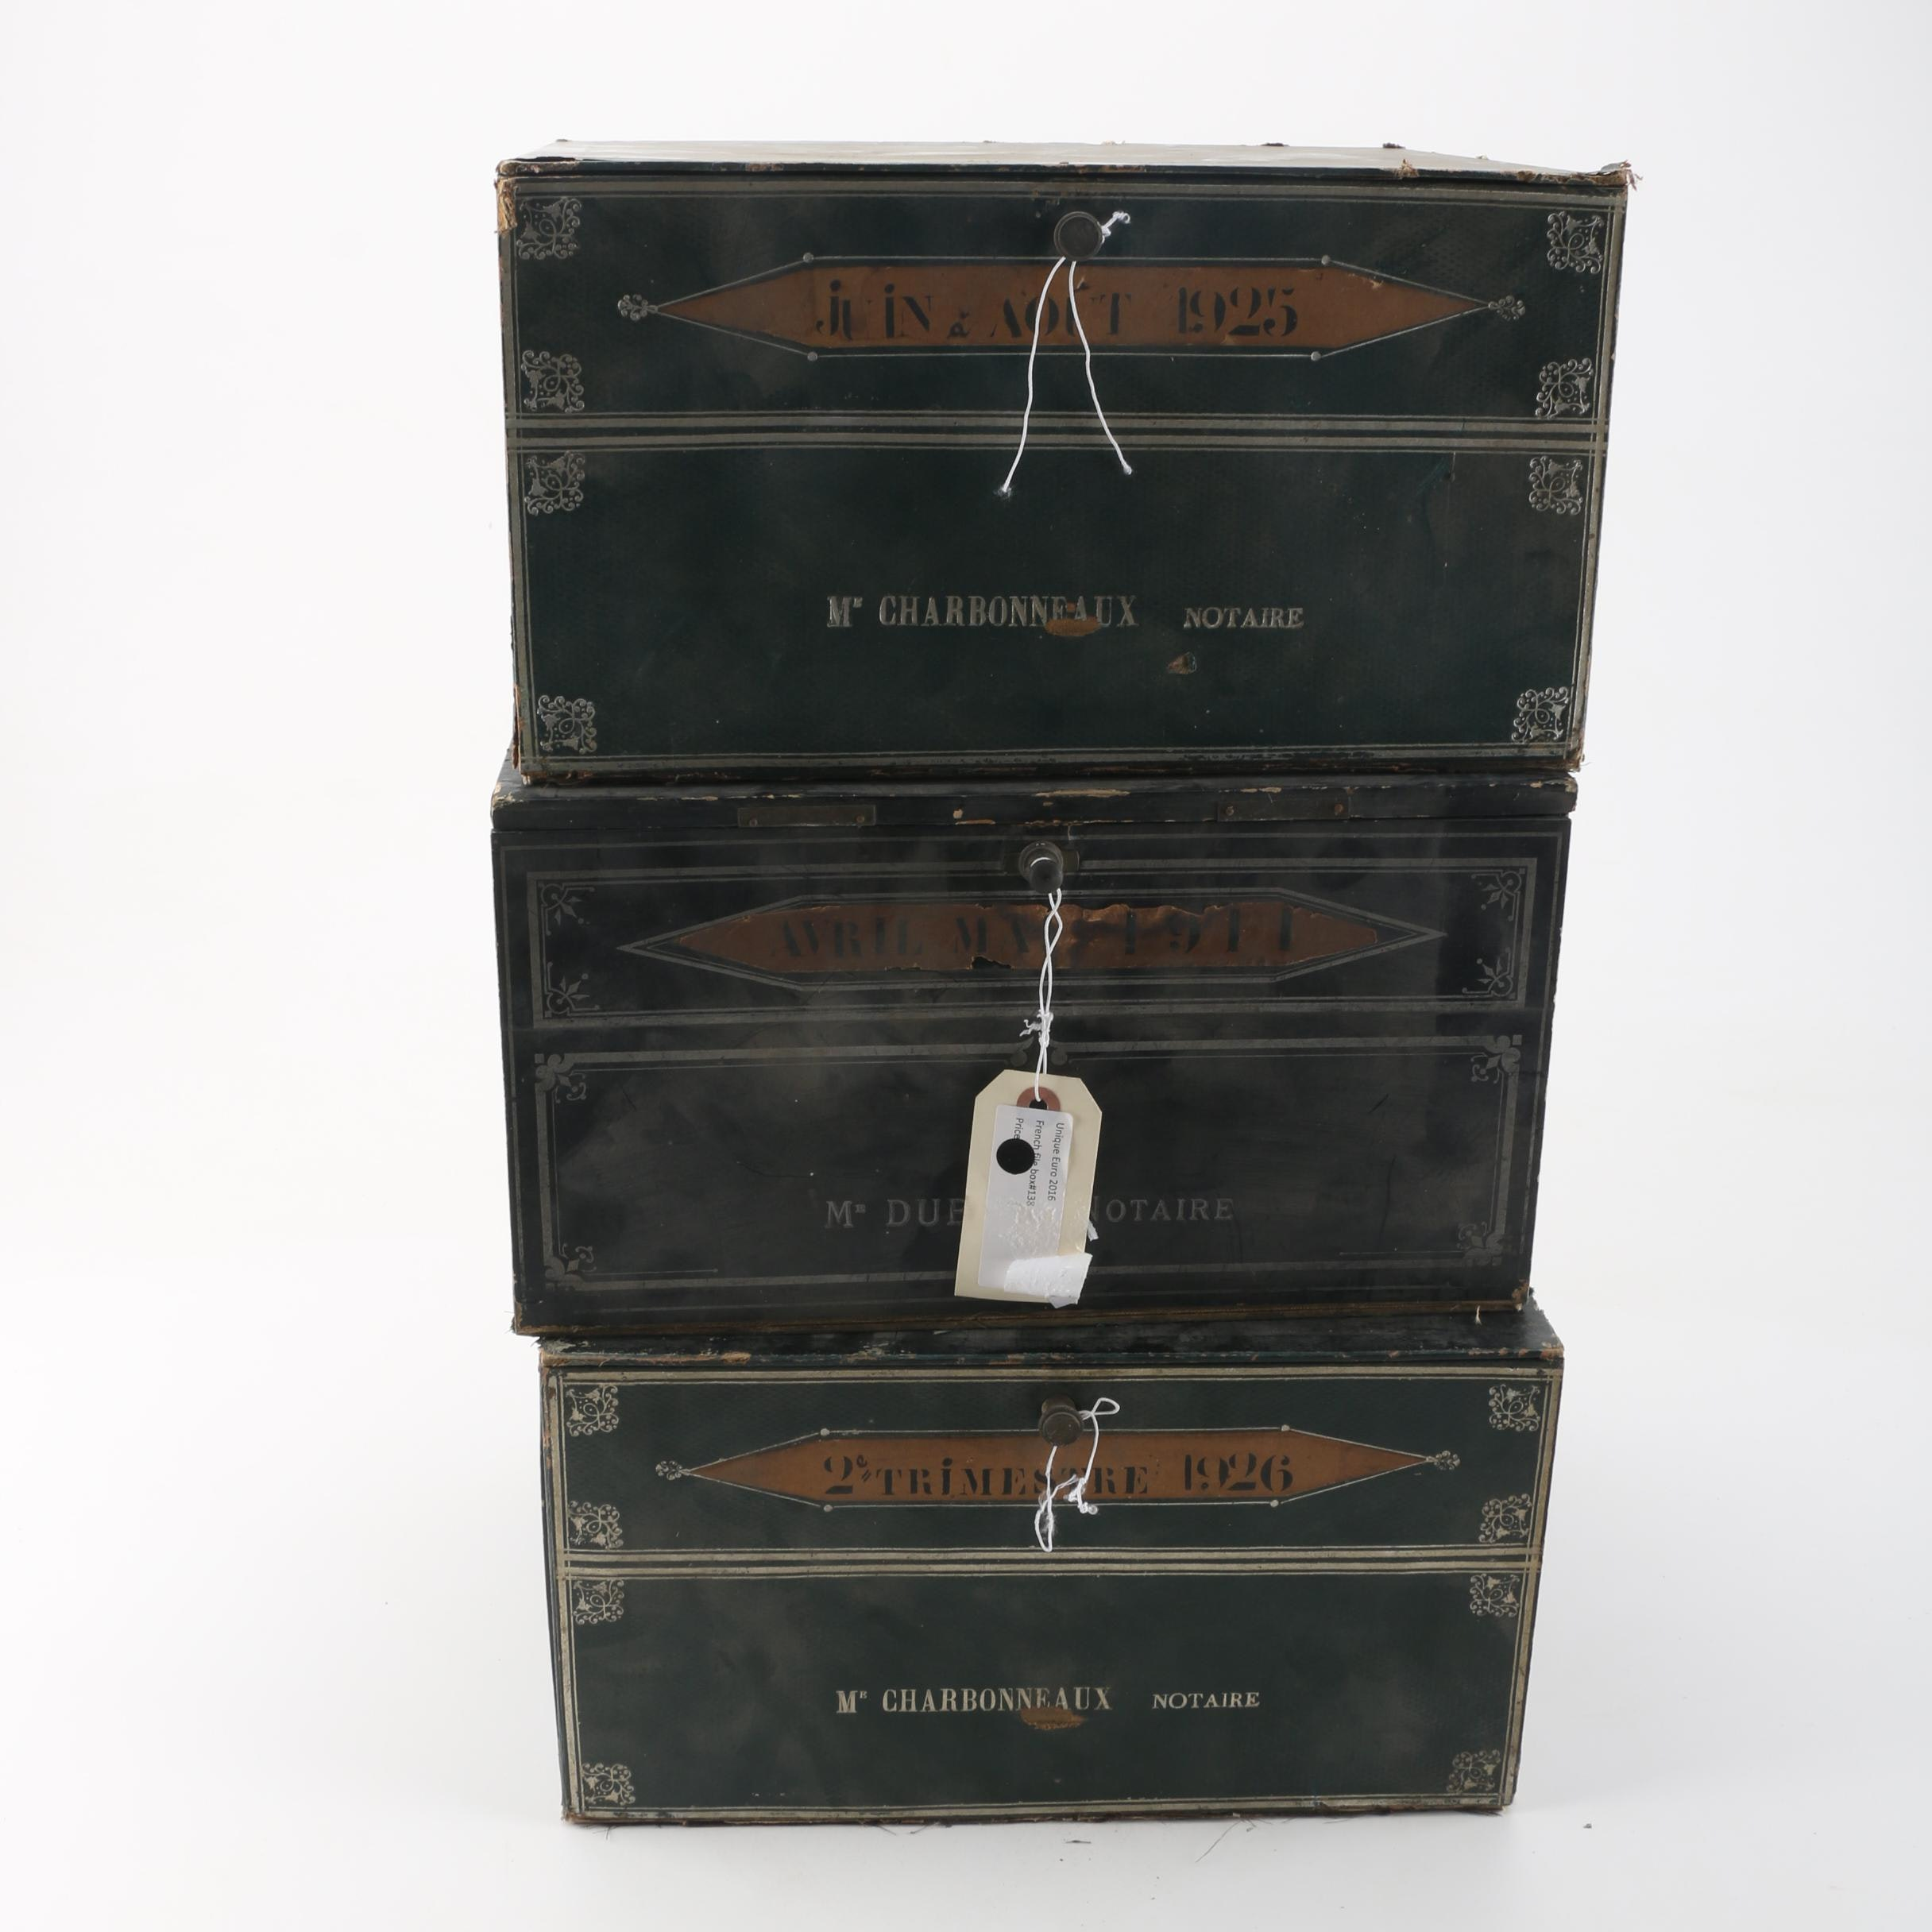 Vintage French Cardboard File Boxes